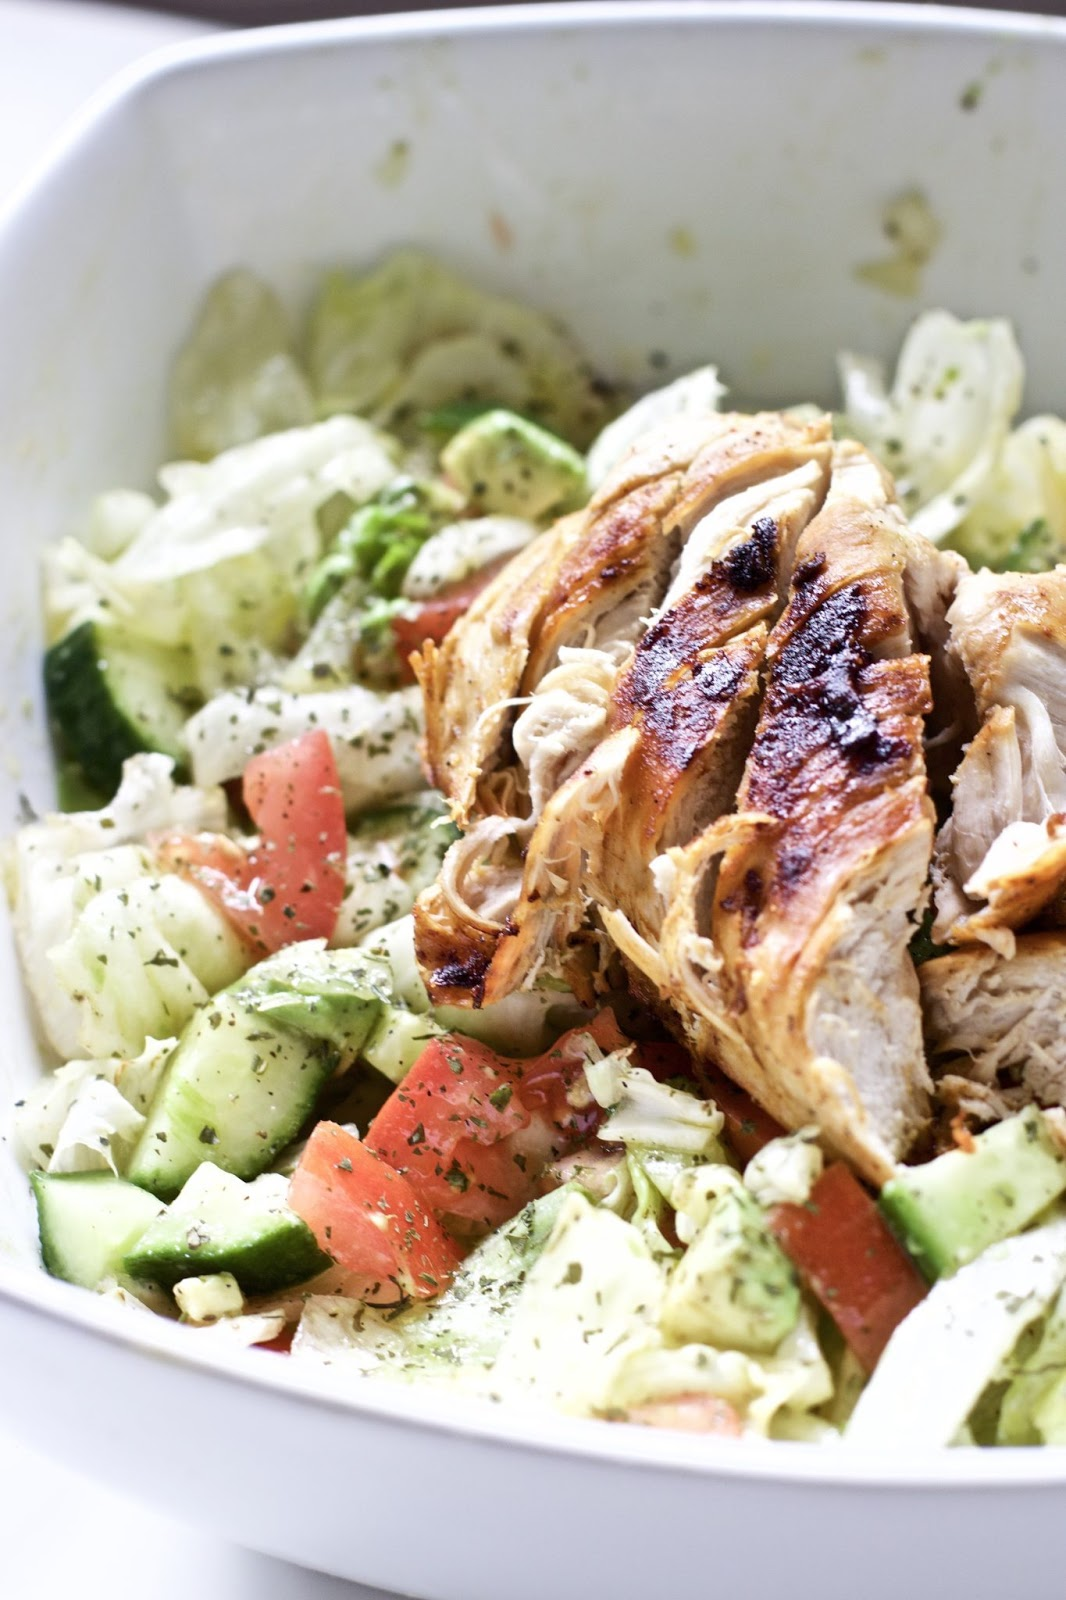 BLACKENED CHICKEN AND AVOCADO SALAD #diet #salad #chicken #healthydiet #kategonic